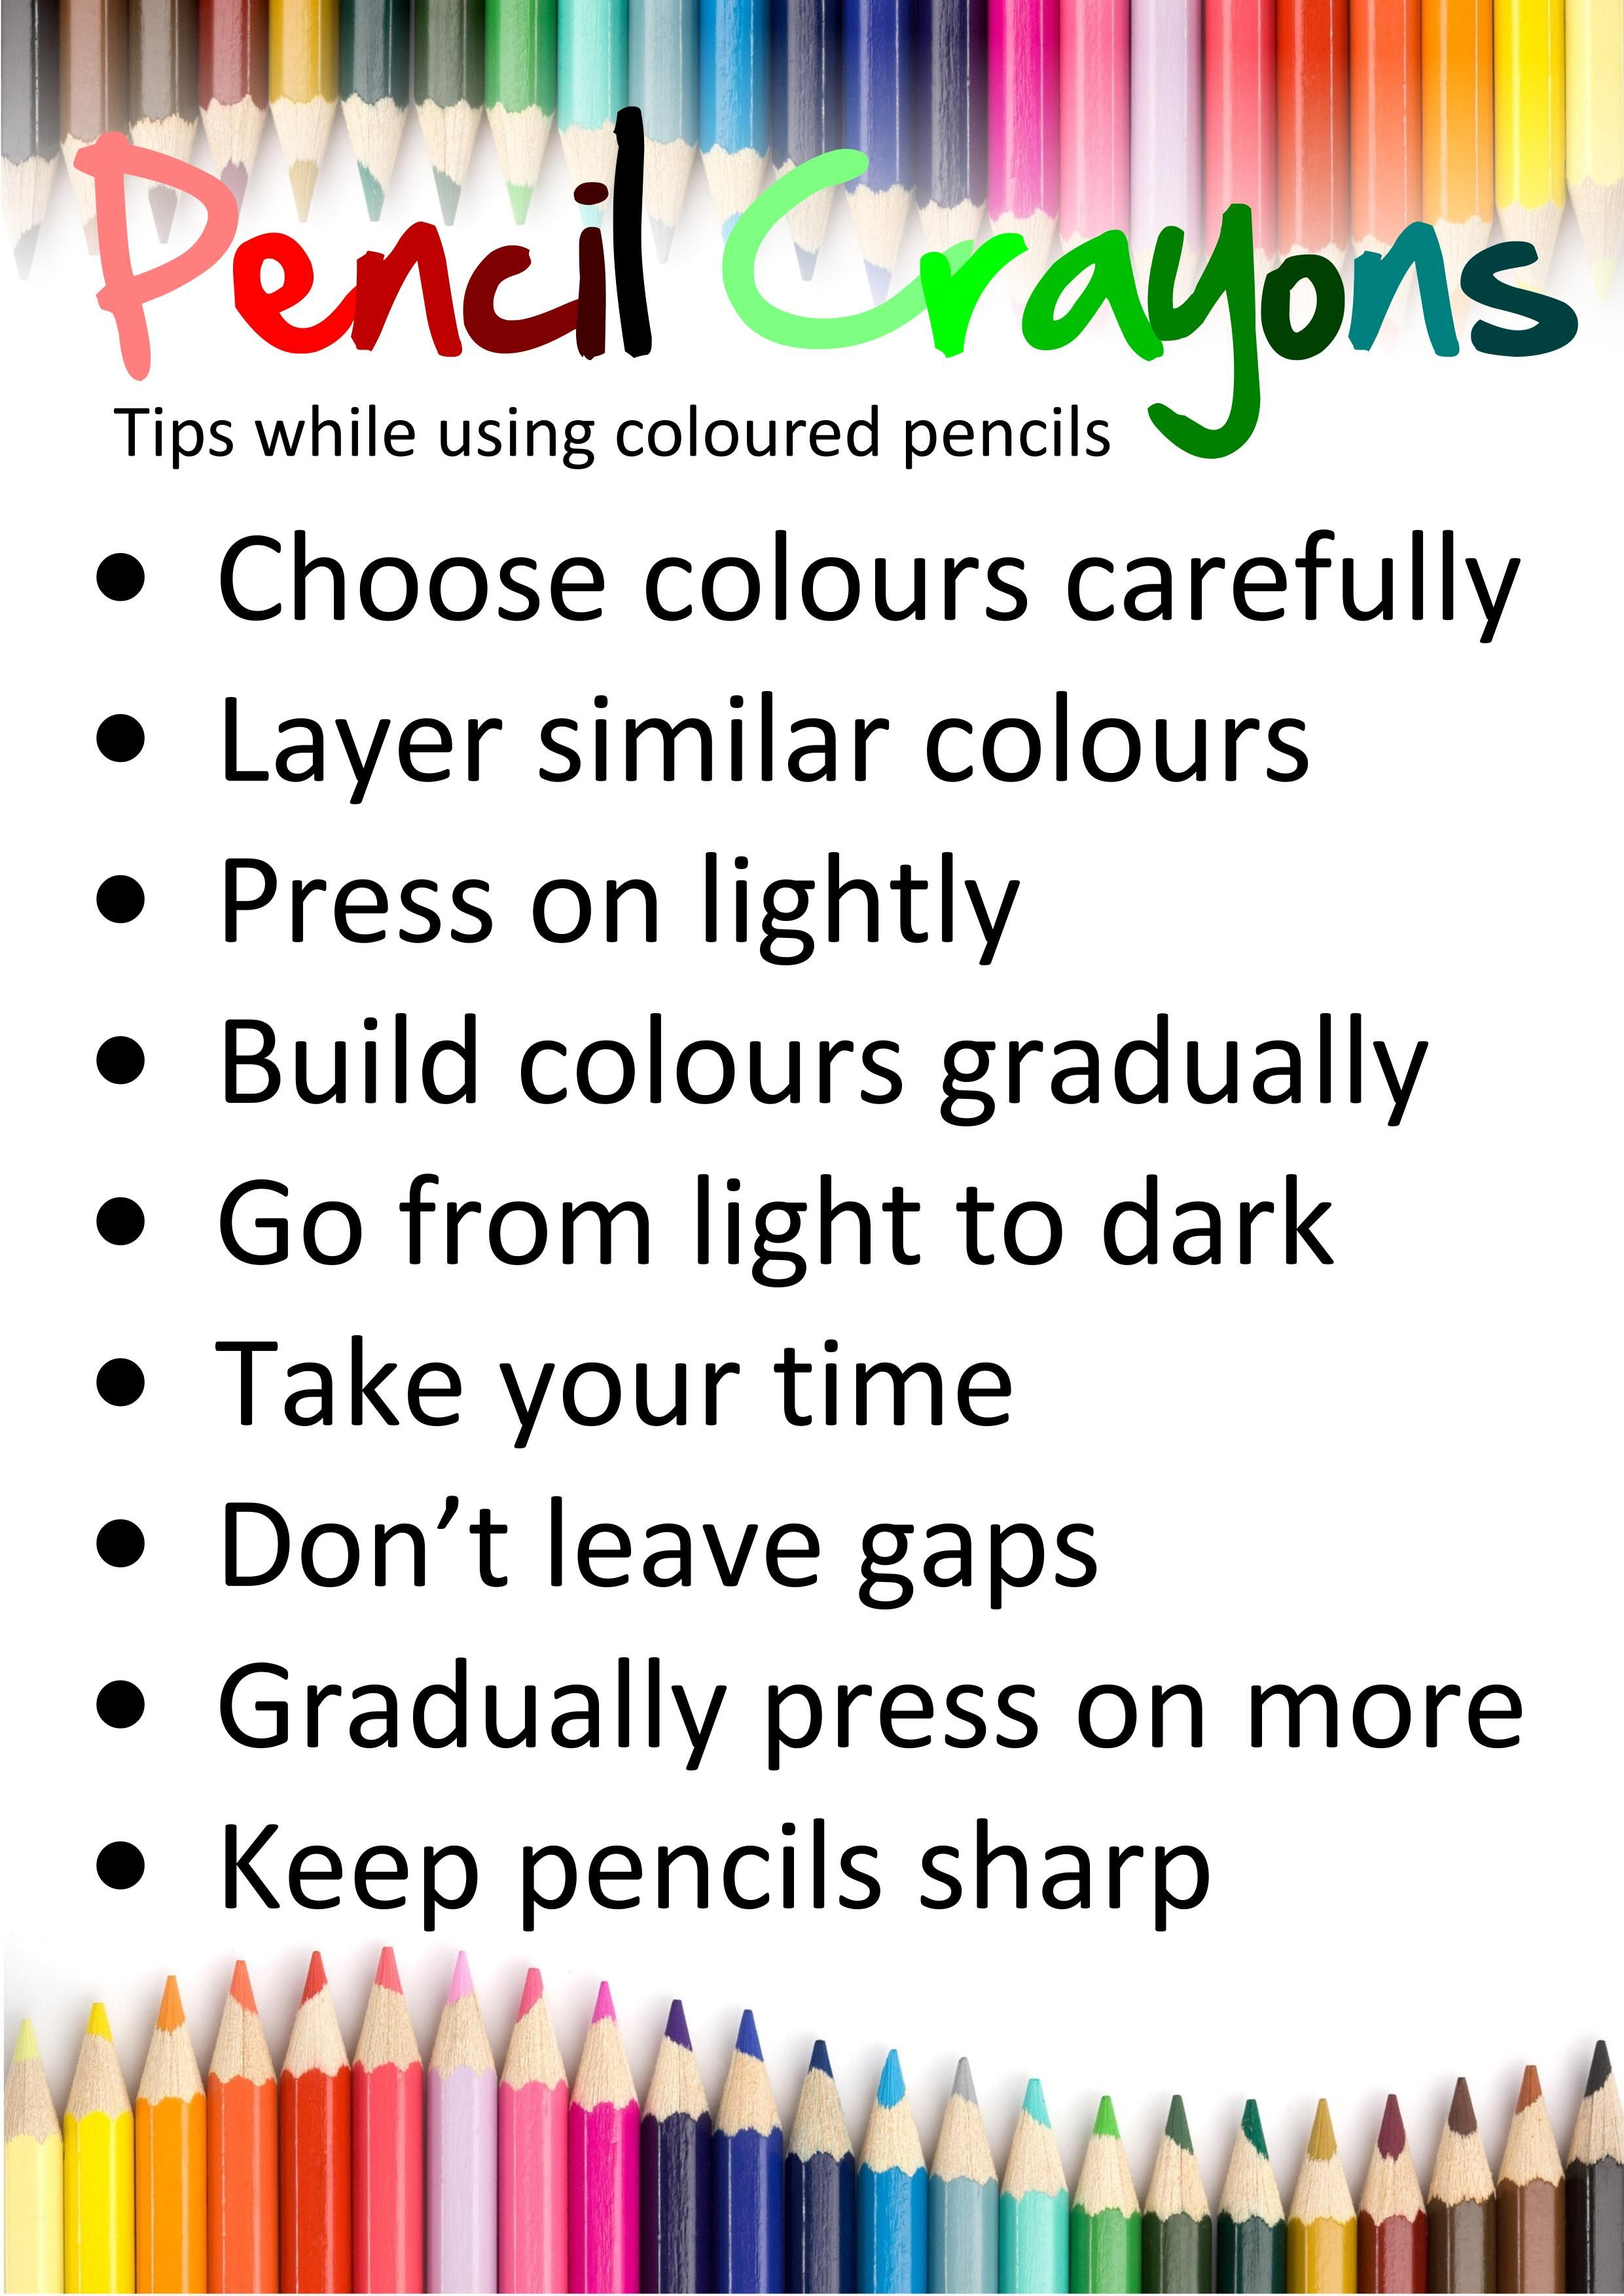 Display Sheet For How To Use Colored Pencils